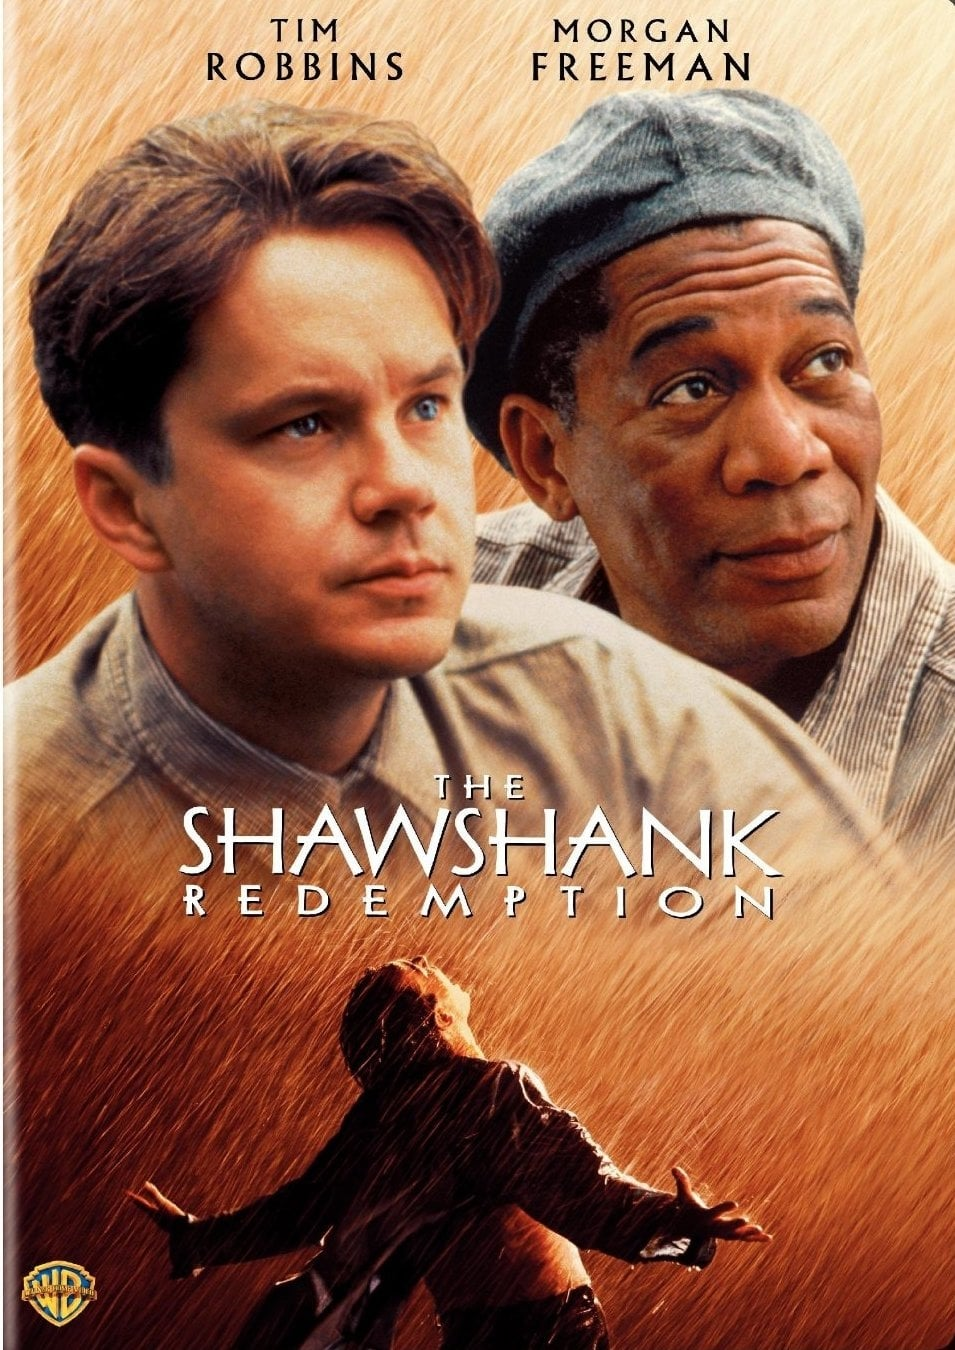 an analysis of the shawshank redemption a movie by frank darabont Darabont wanted to direct the film as he saw it as a love letter to works of frank capra and all the other movies shawshank redemption frank darabont on.